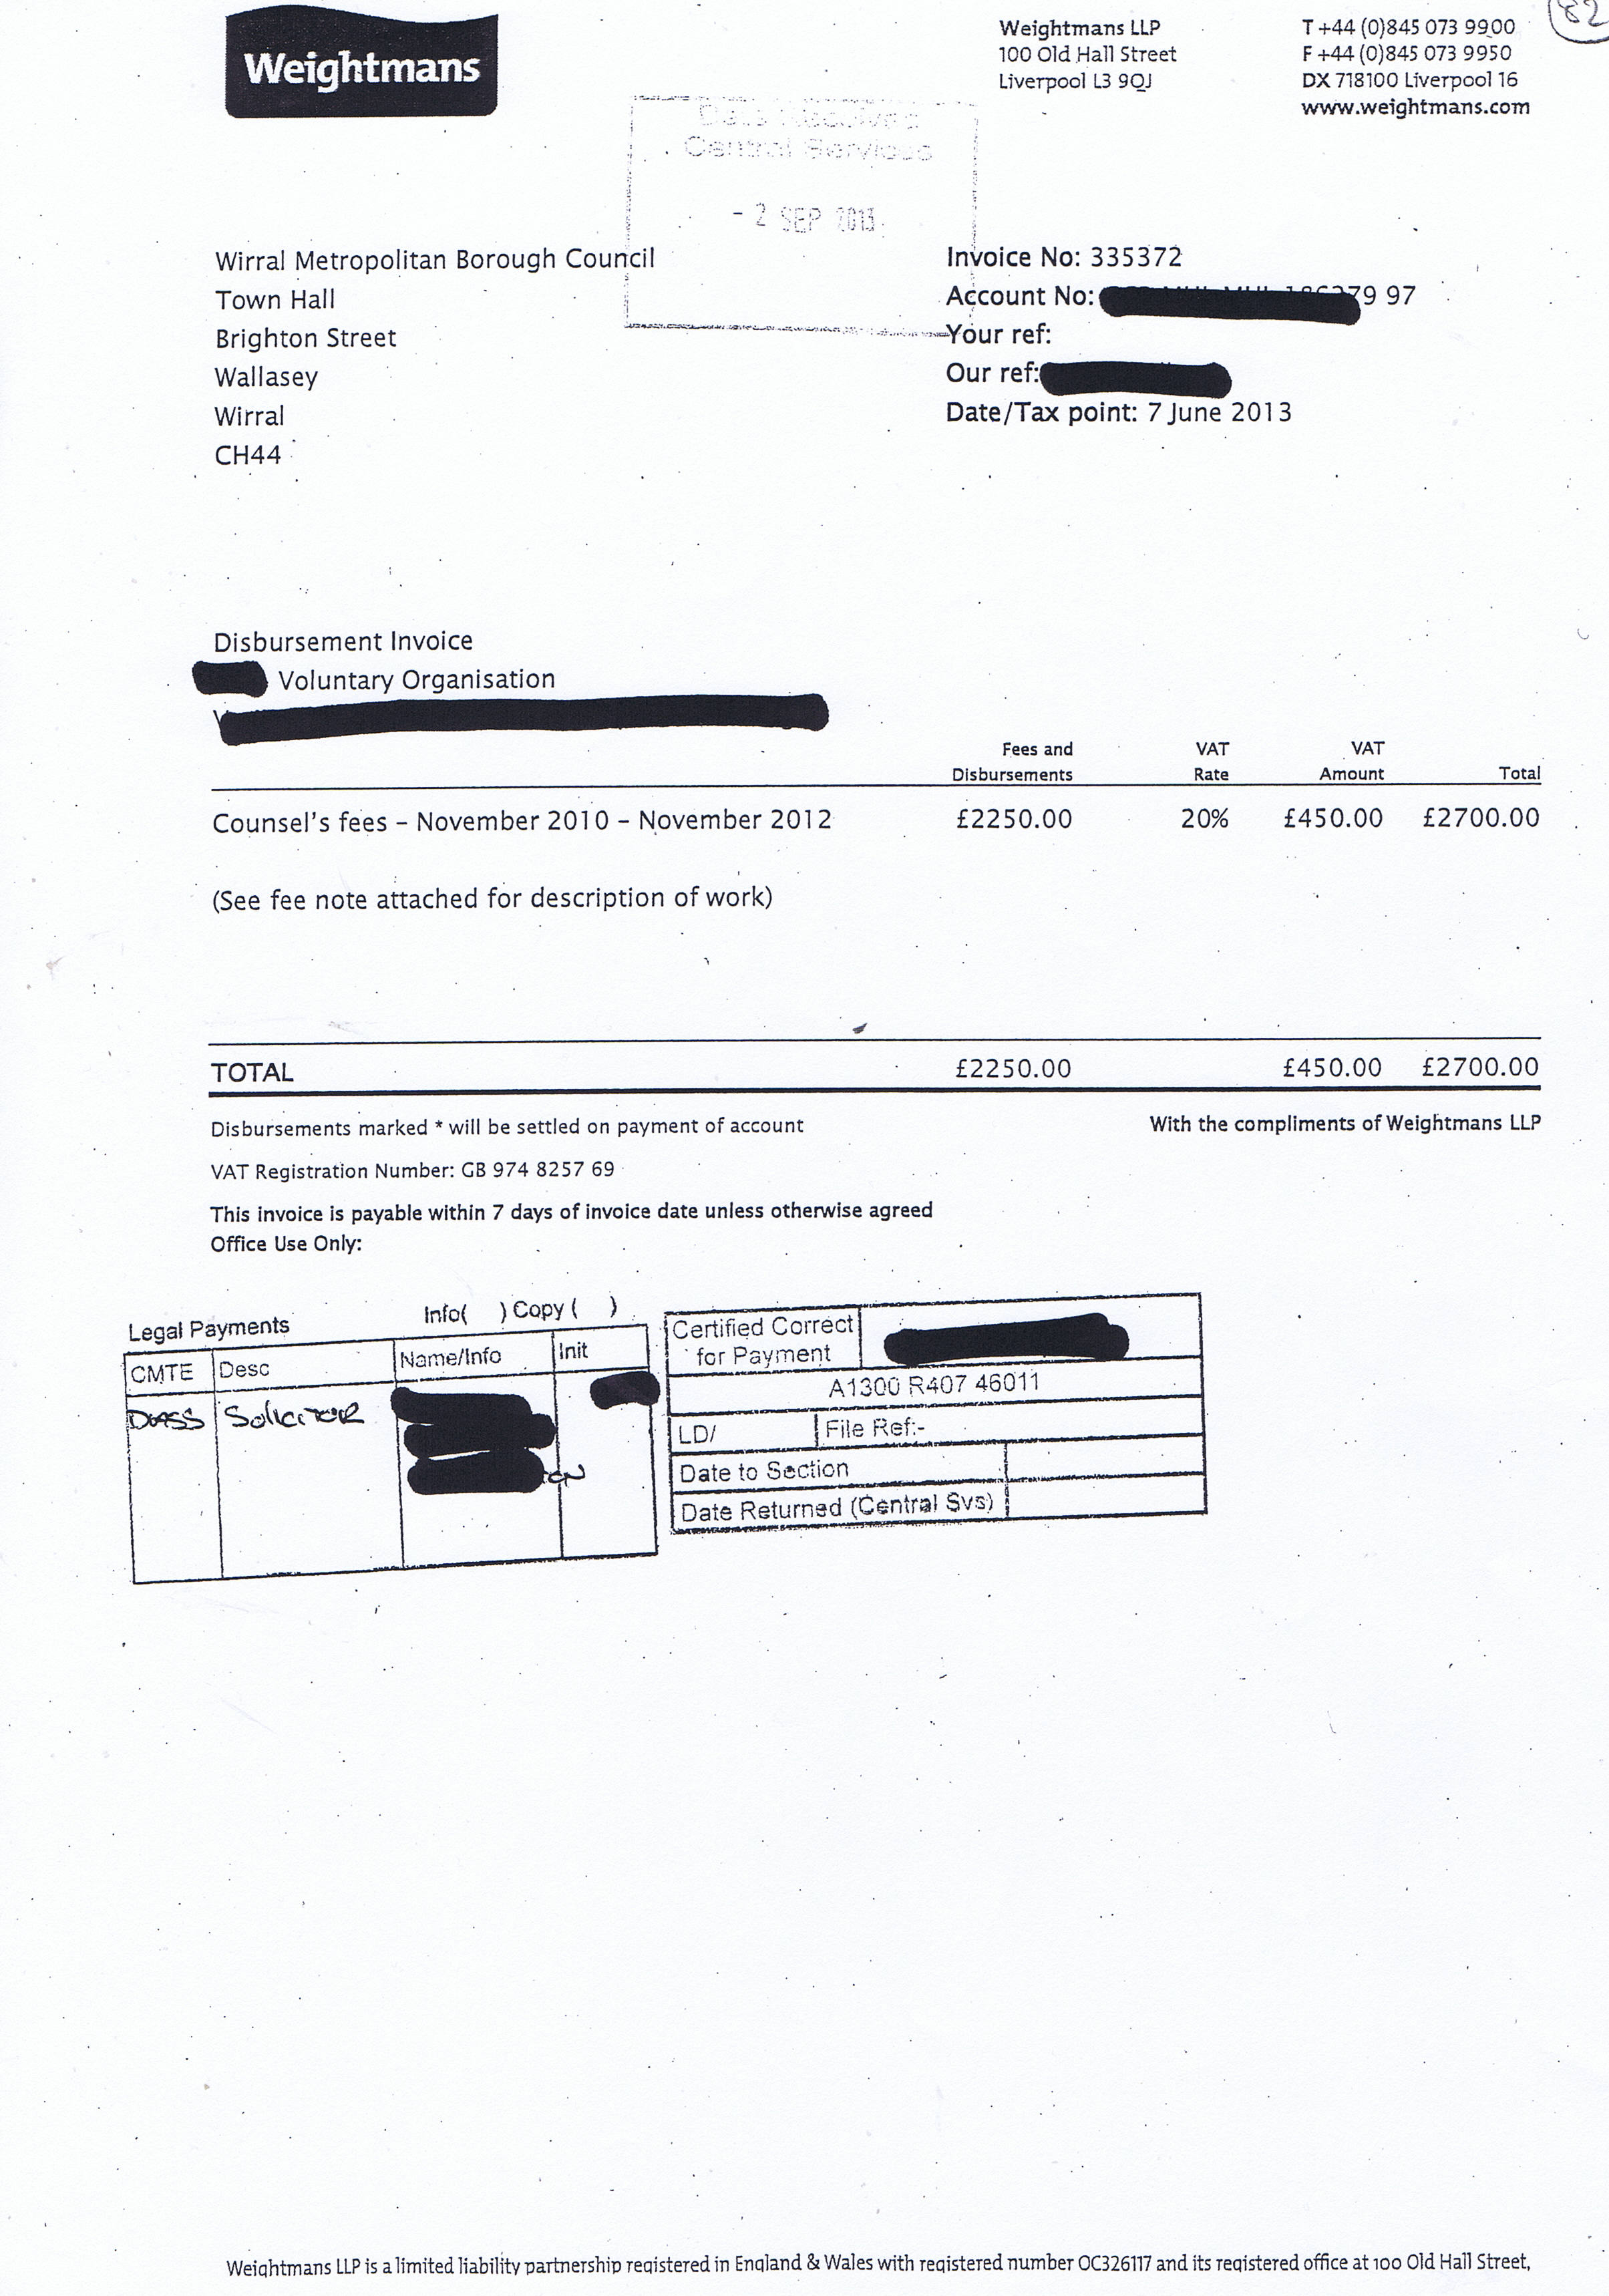 Weightmans invoice